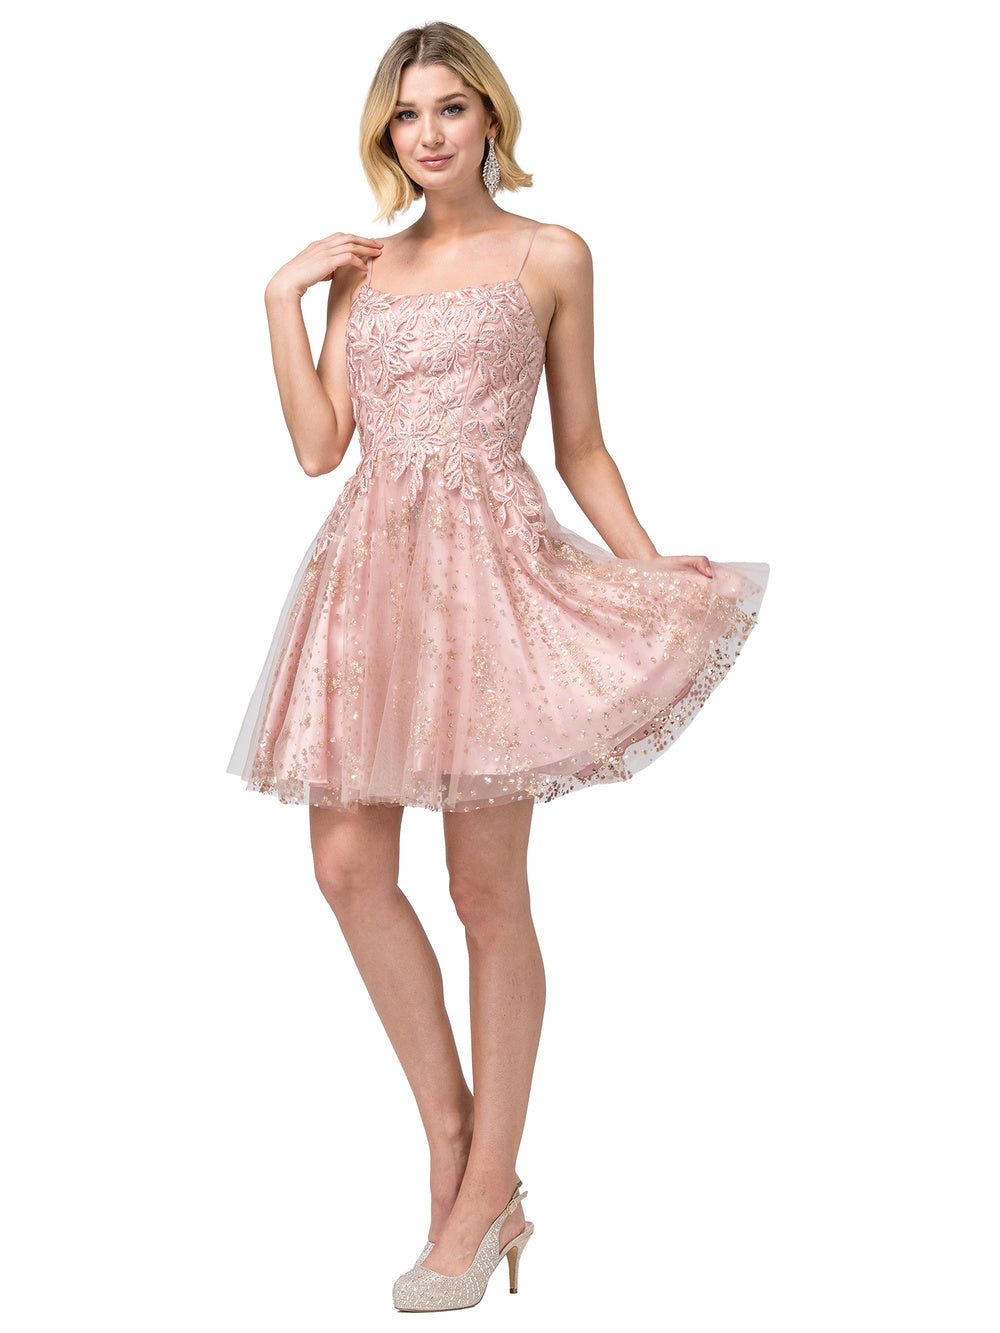 Dancing Queen DQ 3158 - Floral Embroidered Homecoming Dress with Glittery Tulle Skirt - Diggz Prom